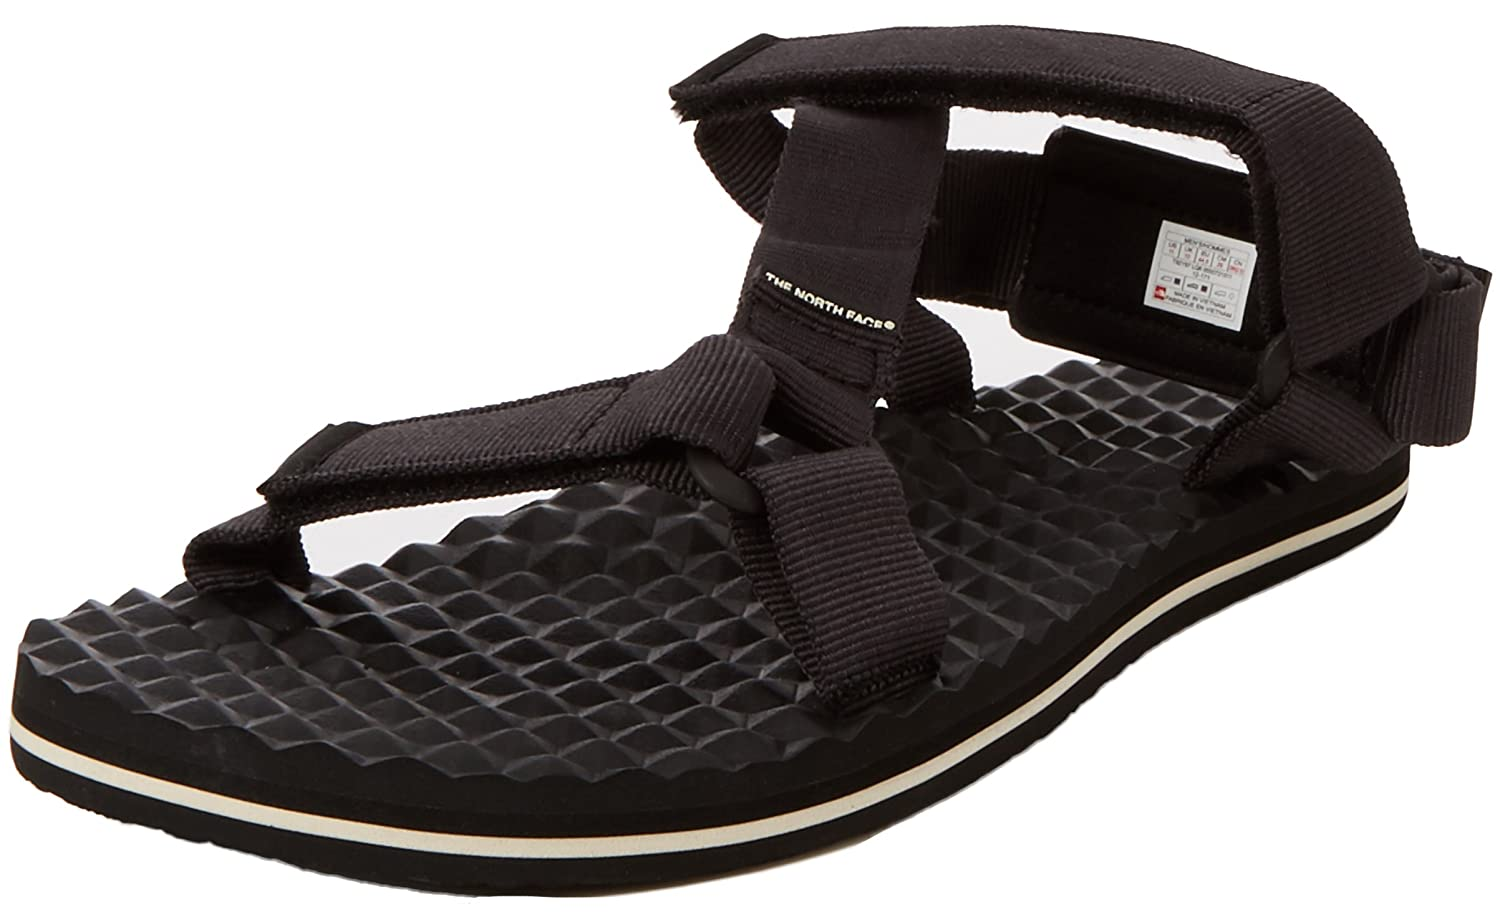 b2136a859 THE NORTH FACE Men's Base Camp Switchback Hiking Sandals